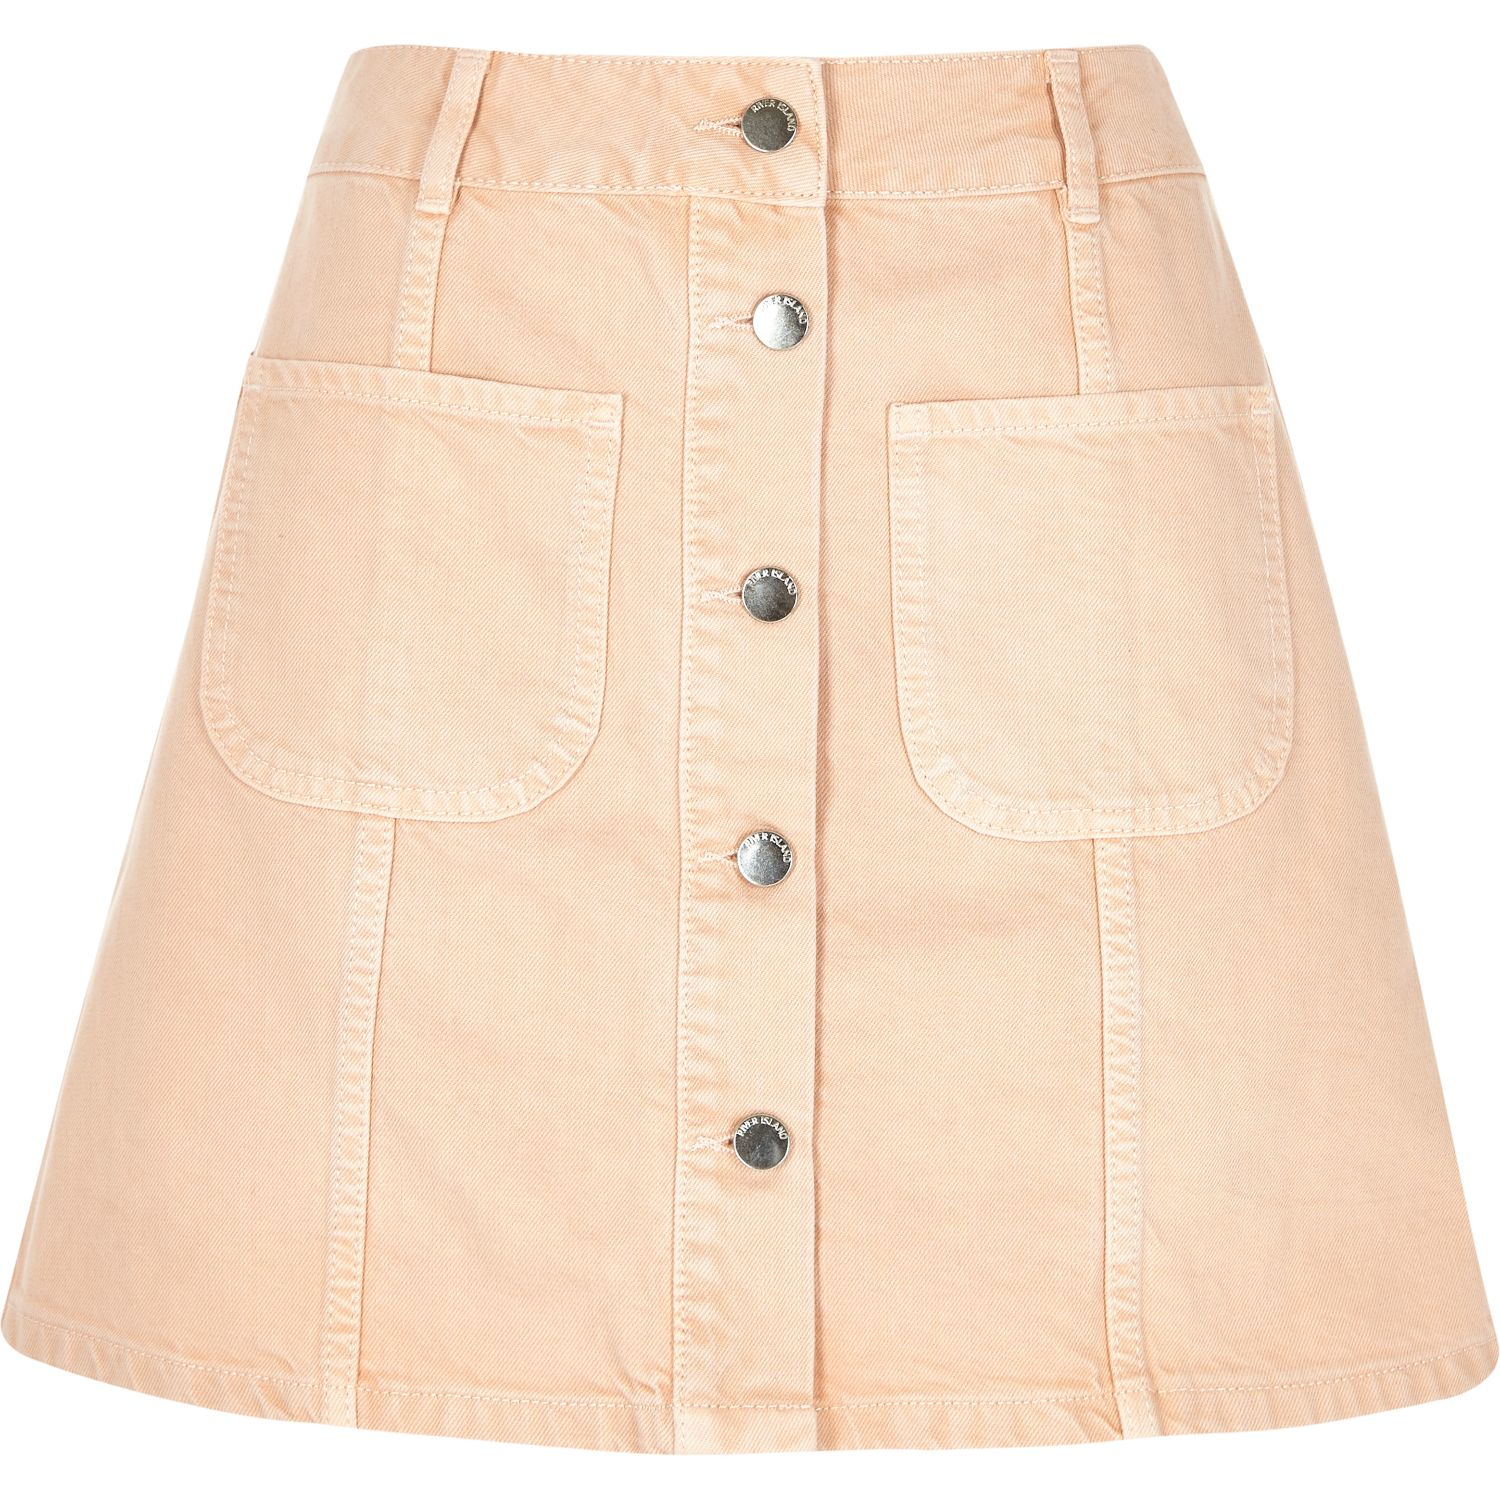 78e3cebc1746b1 River Island Pink Denim Button-up A-line Skirt in Pink - Lyst